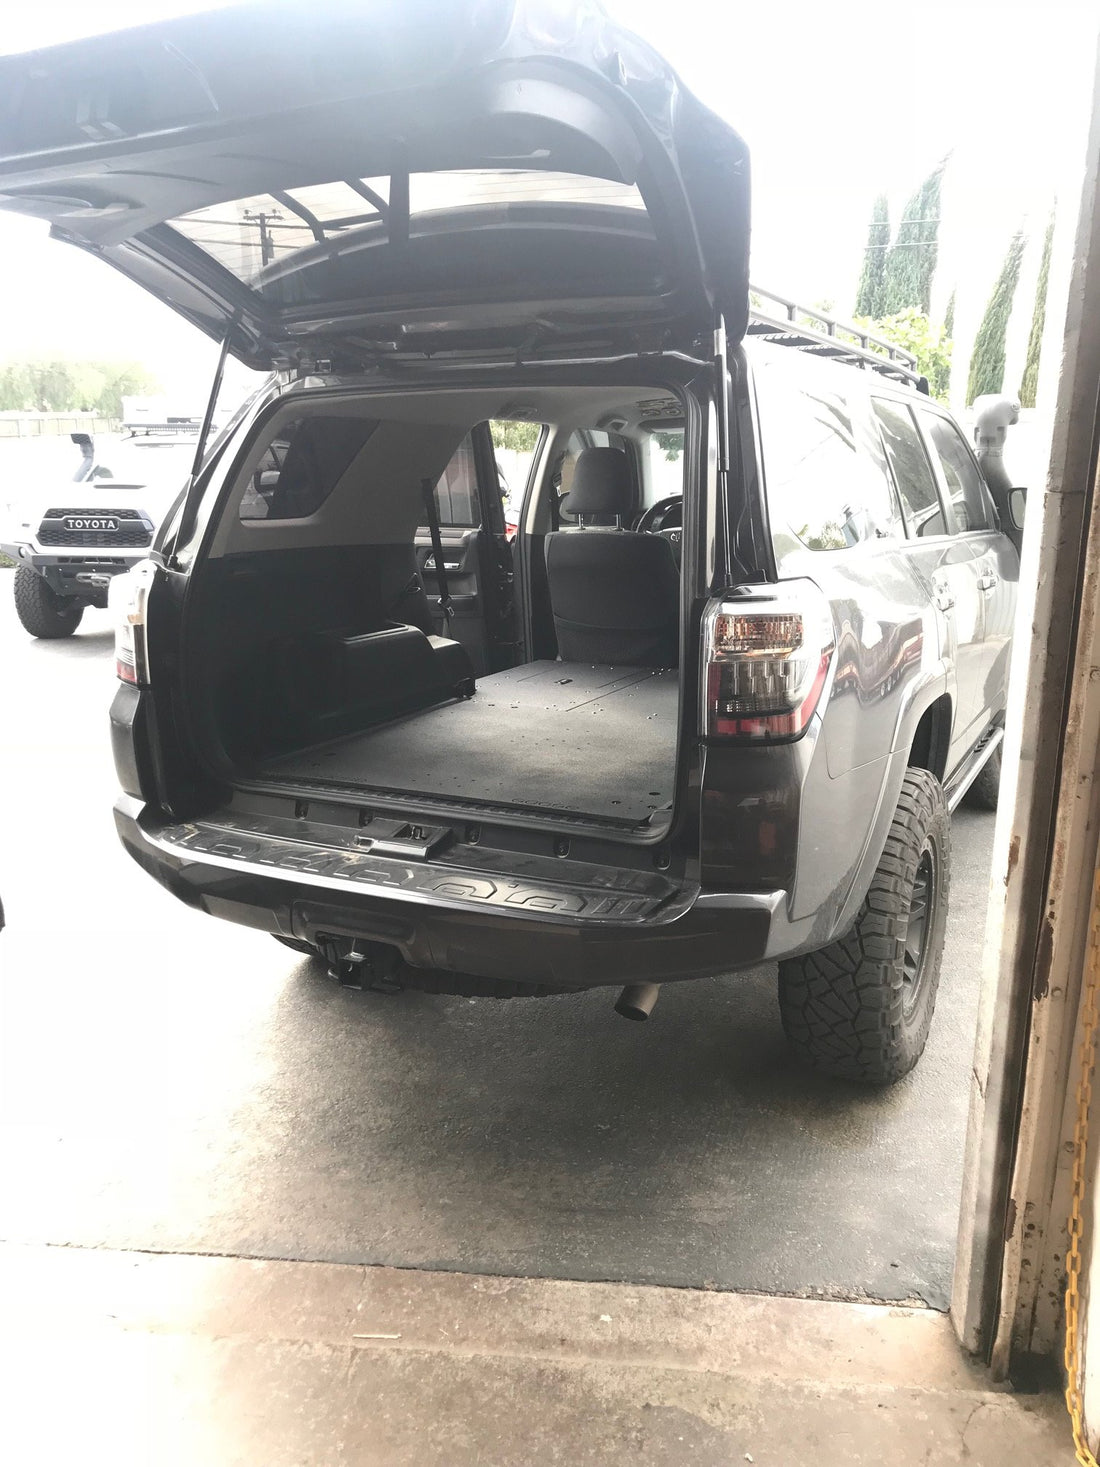 4Runner 5th Gen Low Profile Plate Based Sleeping Platforms 2010-Current Model Years